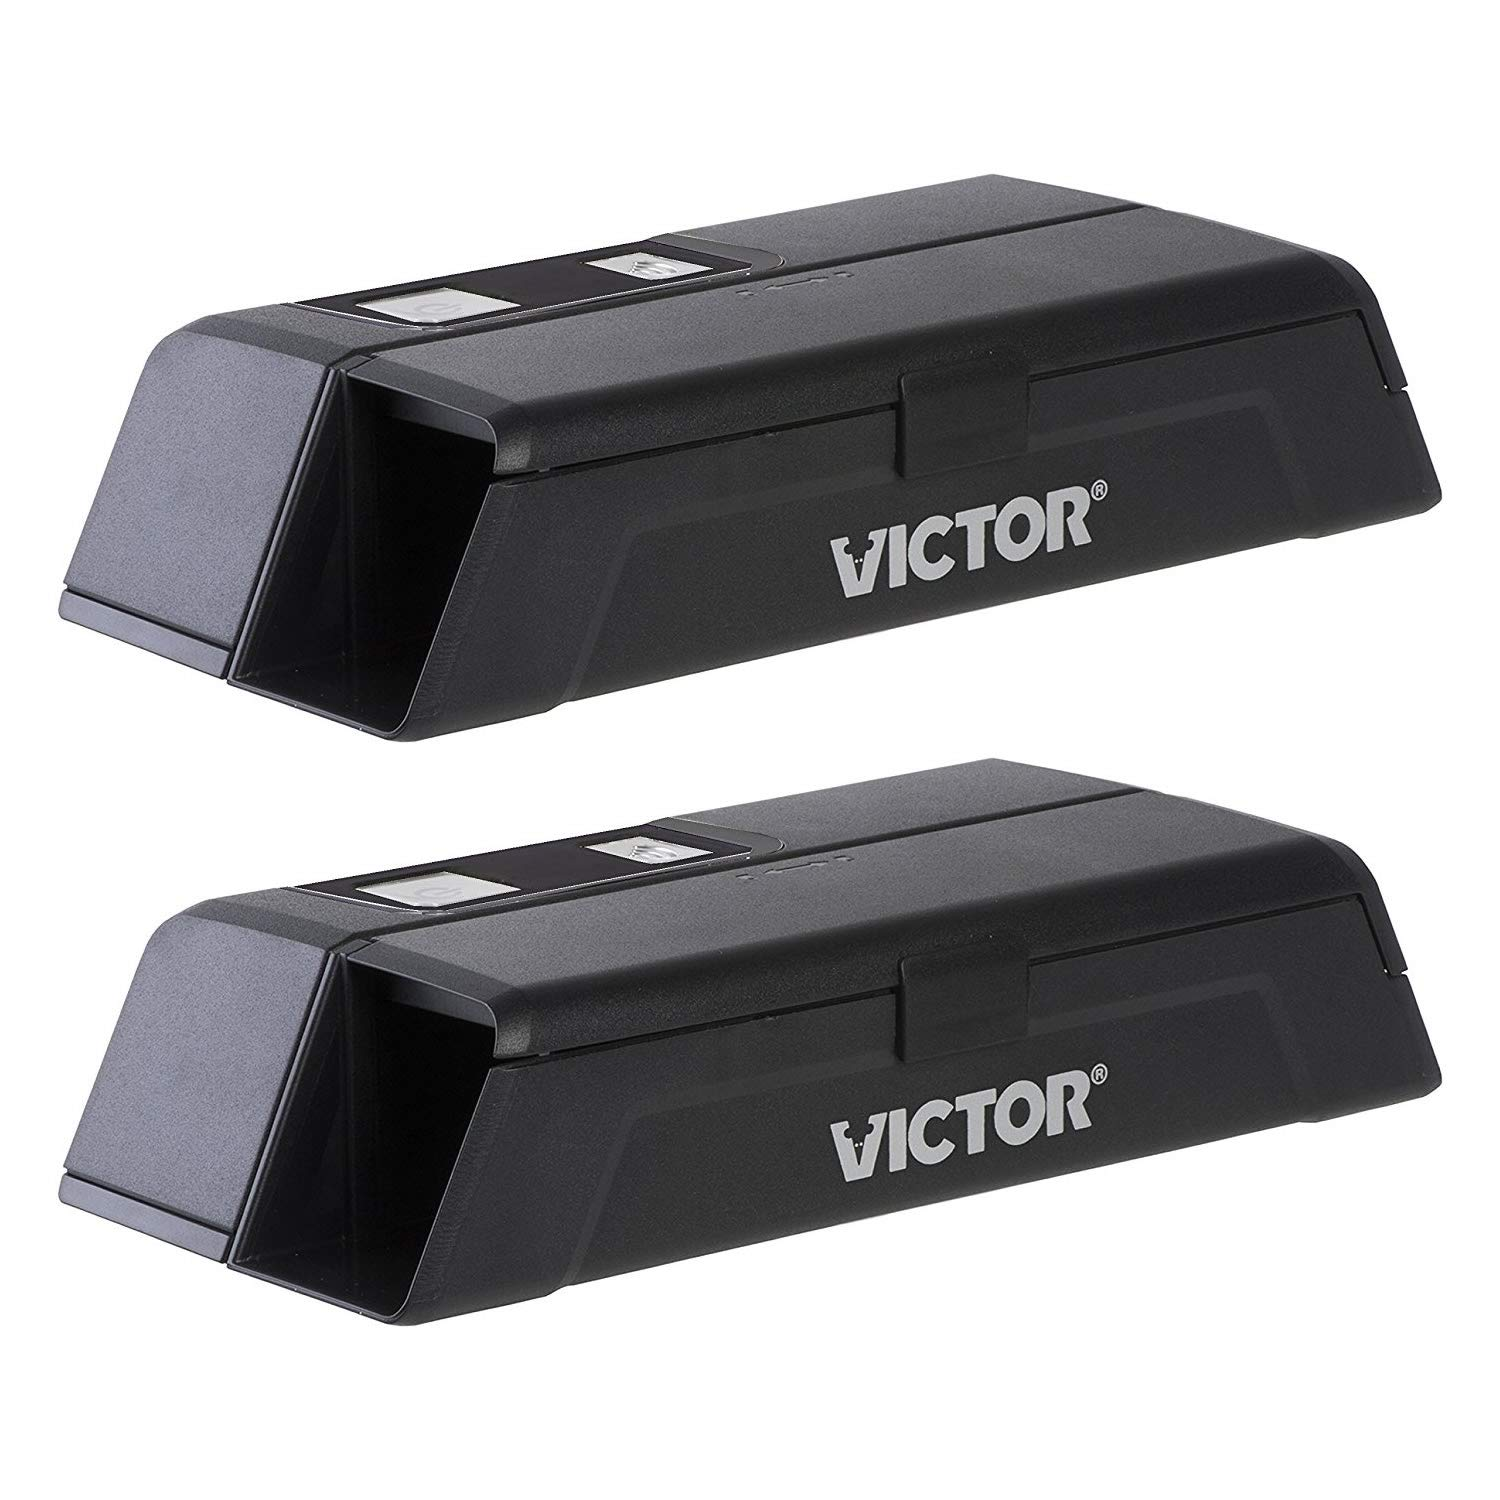 Victor M1-2P M1 Smart-Kill Wi-Fi Electronic Mouse Trap-2 Pack, Black by Victor